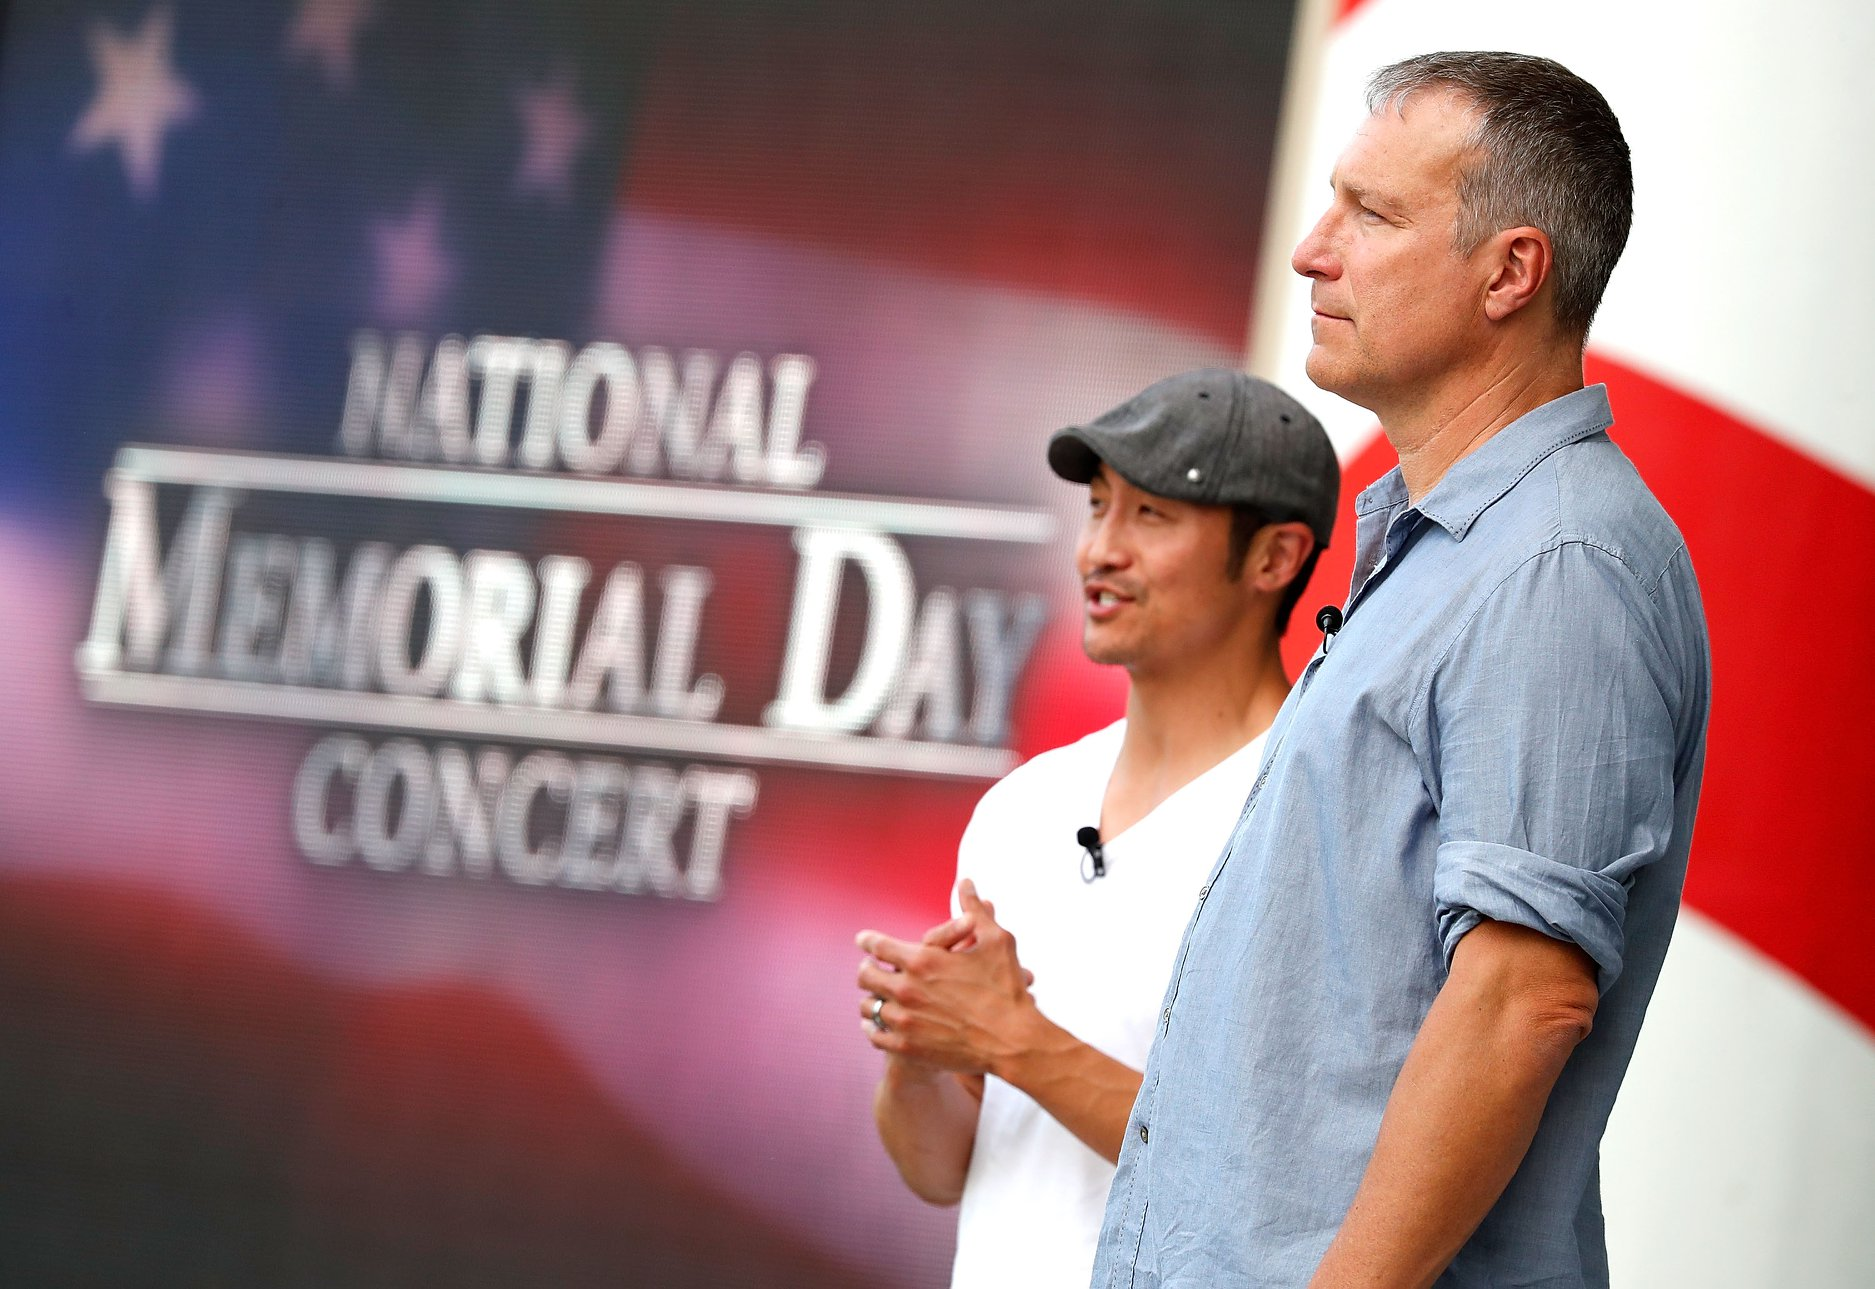 Actors Brian Tee and John Corbett rehearsing for the 2018 <em>National Memorial Day Concert</em>.